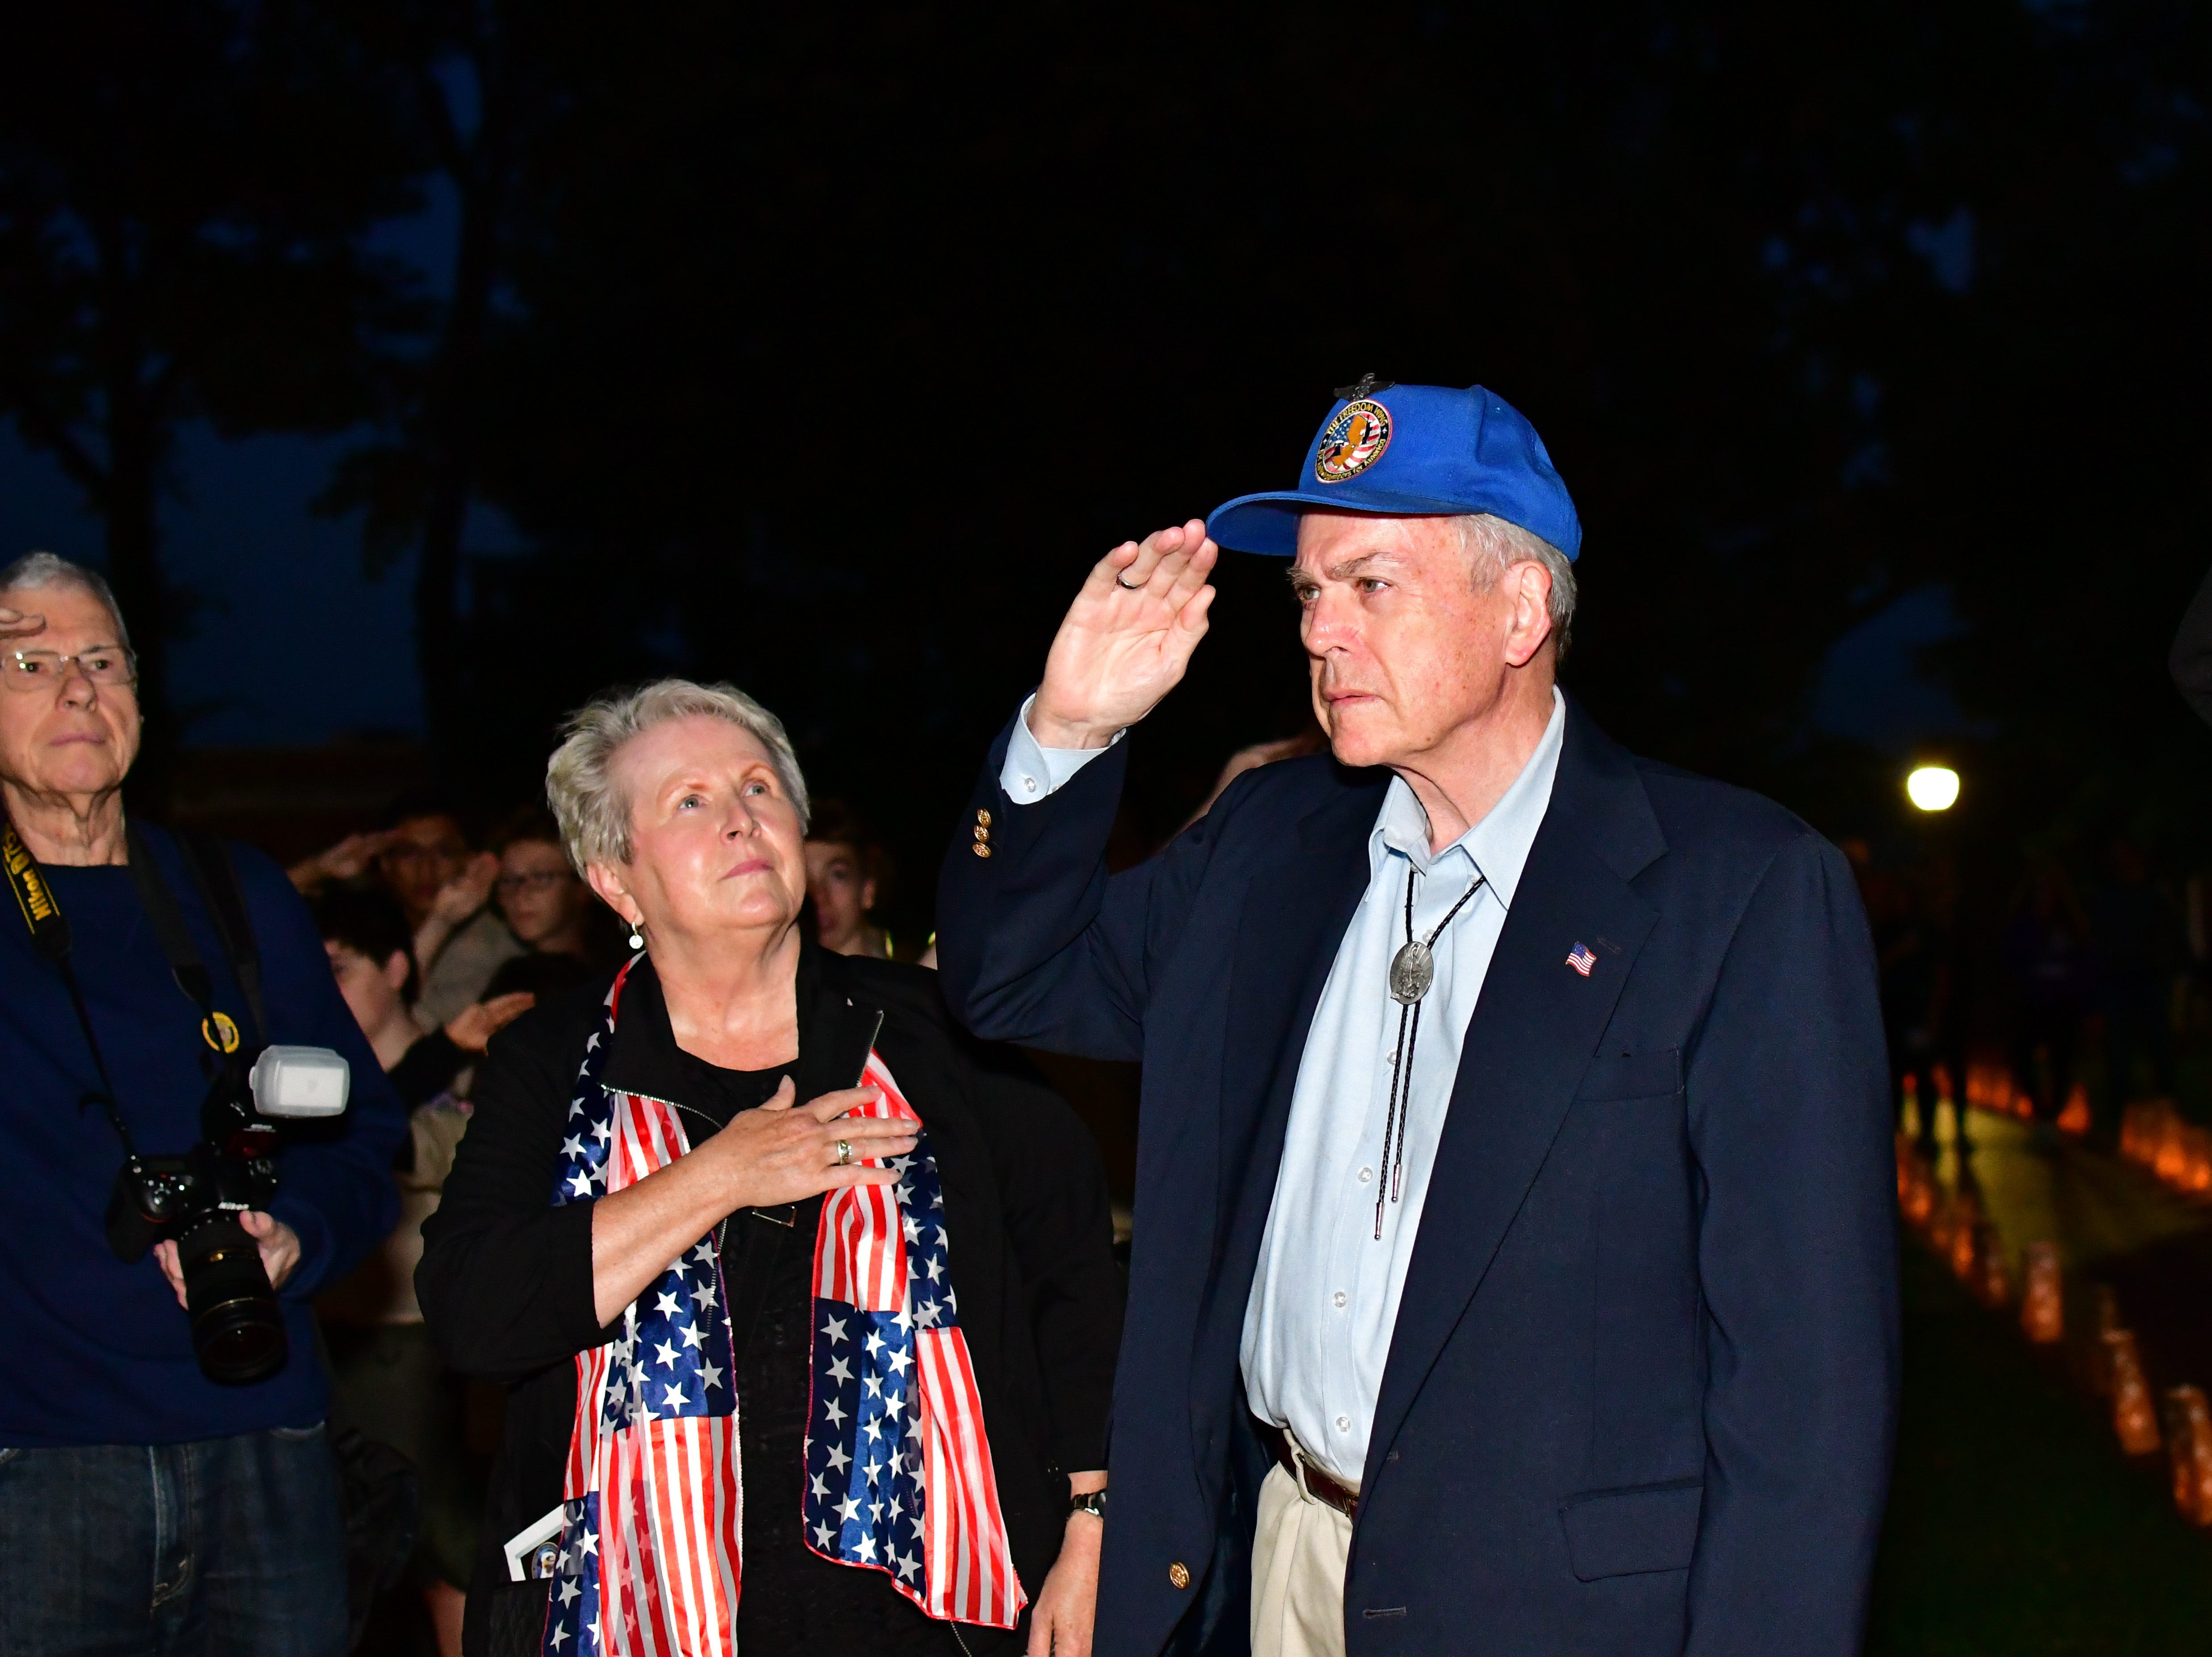 Margaret Gensch and Al Gensch. The Gold Star Mother's Day Committee sponsored its eighth annual event commemorating Gold Star Mother's Day on Sept. 30, at Van Neste Park, Ridgewood. After a short ceremony, hundreds of luminaries were lit to honor Gold Star Mothers (moms who had lost sons and daughters to the war) and their families.